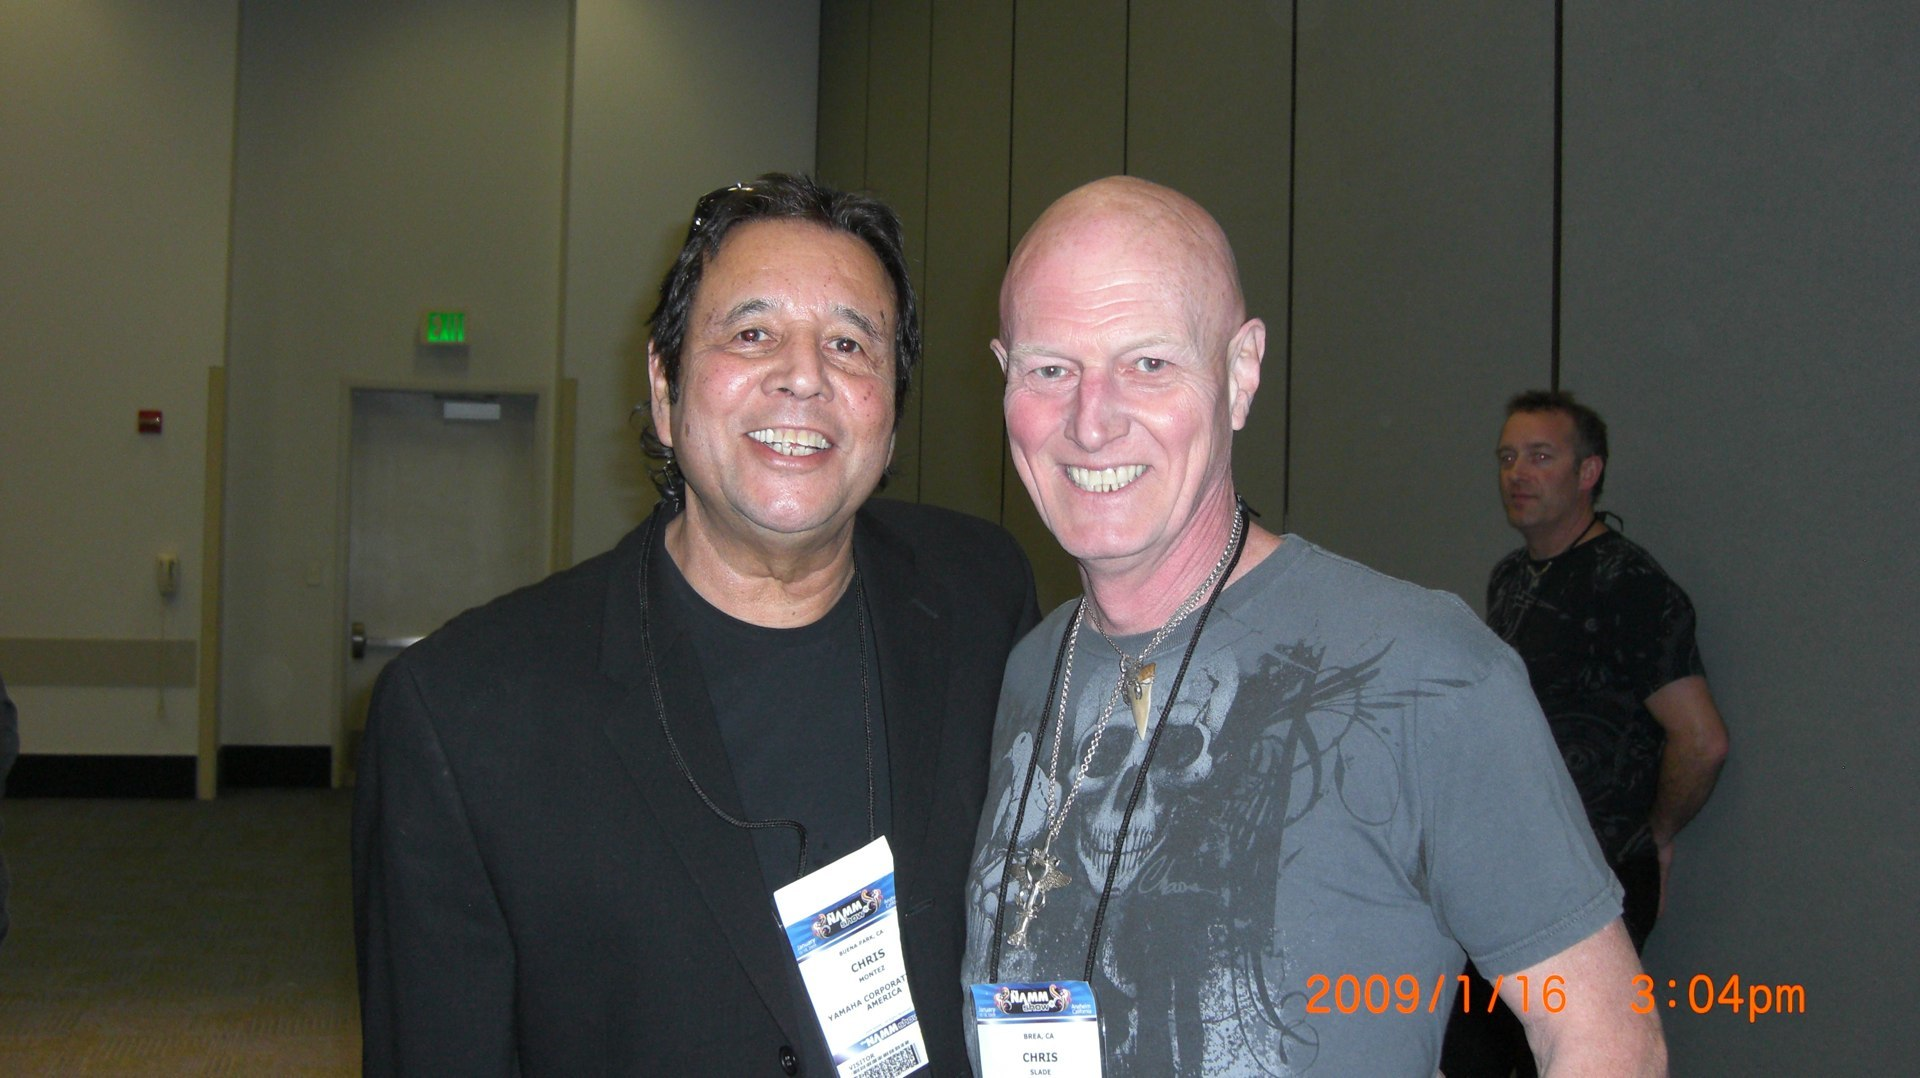 Ray Montez/Chris Slade (AC DC)  Ray